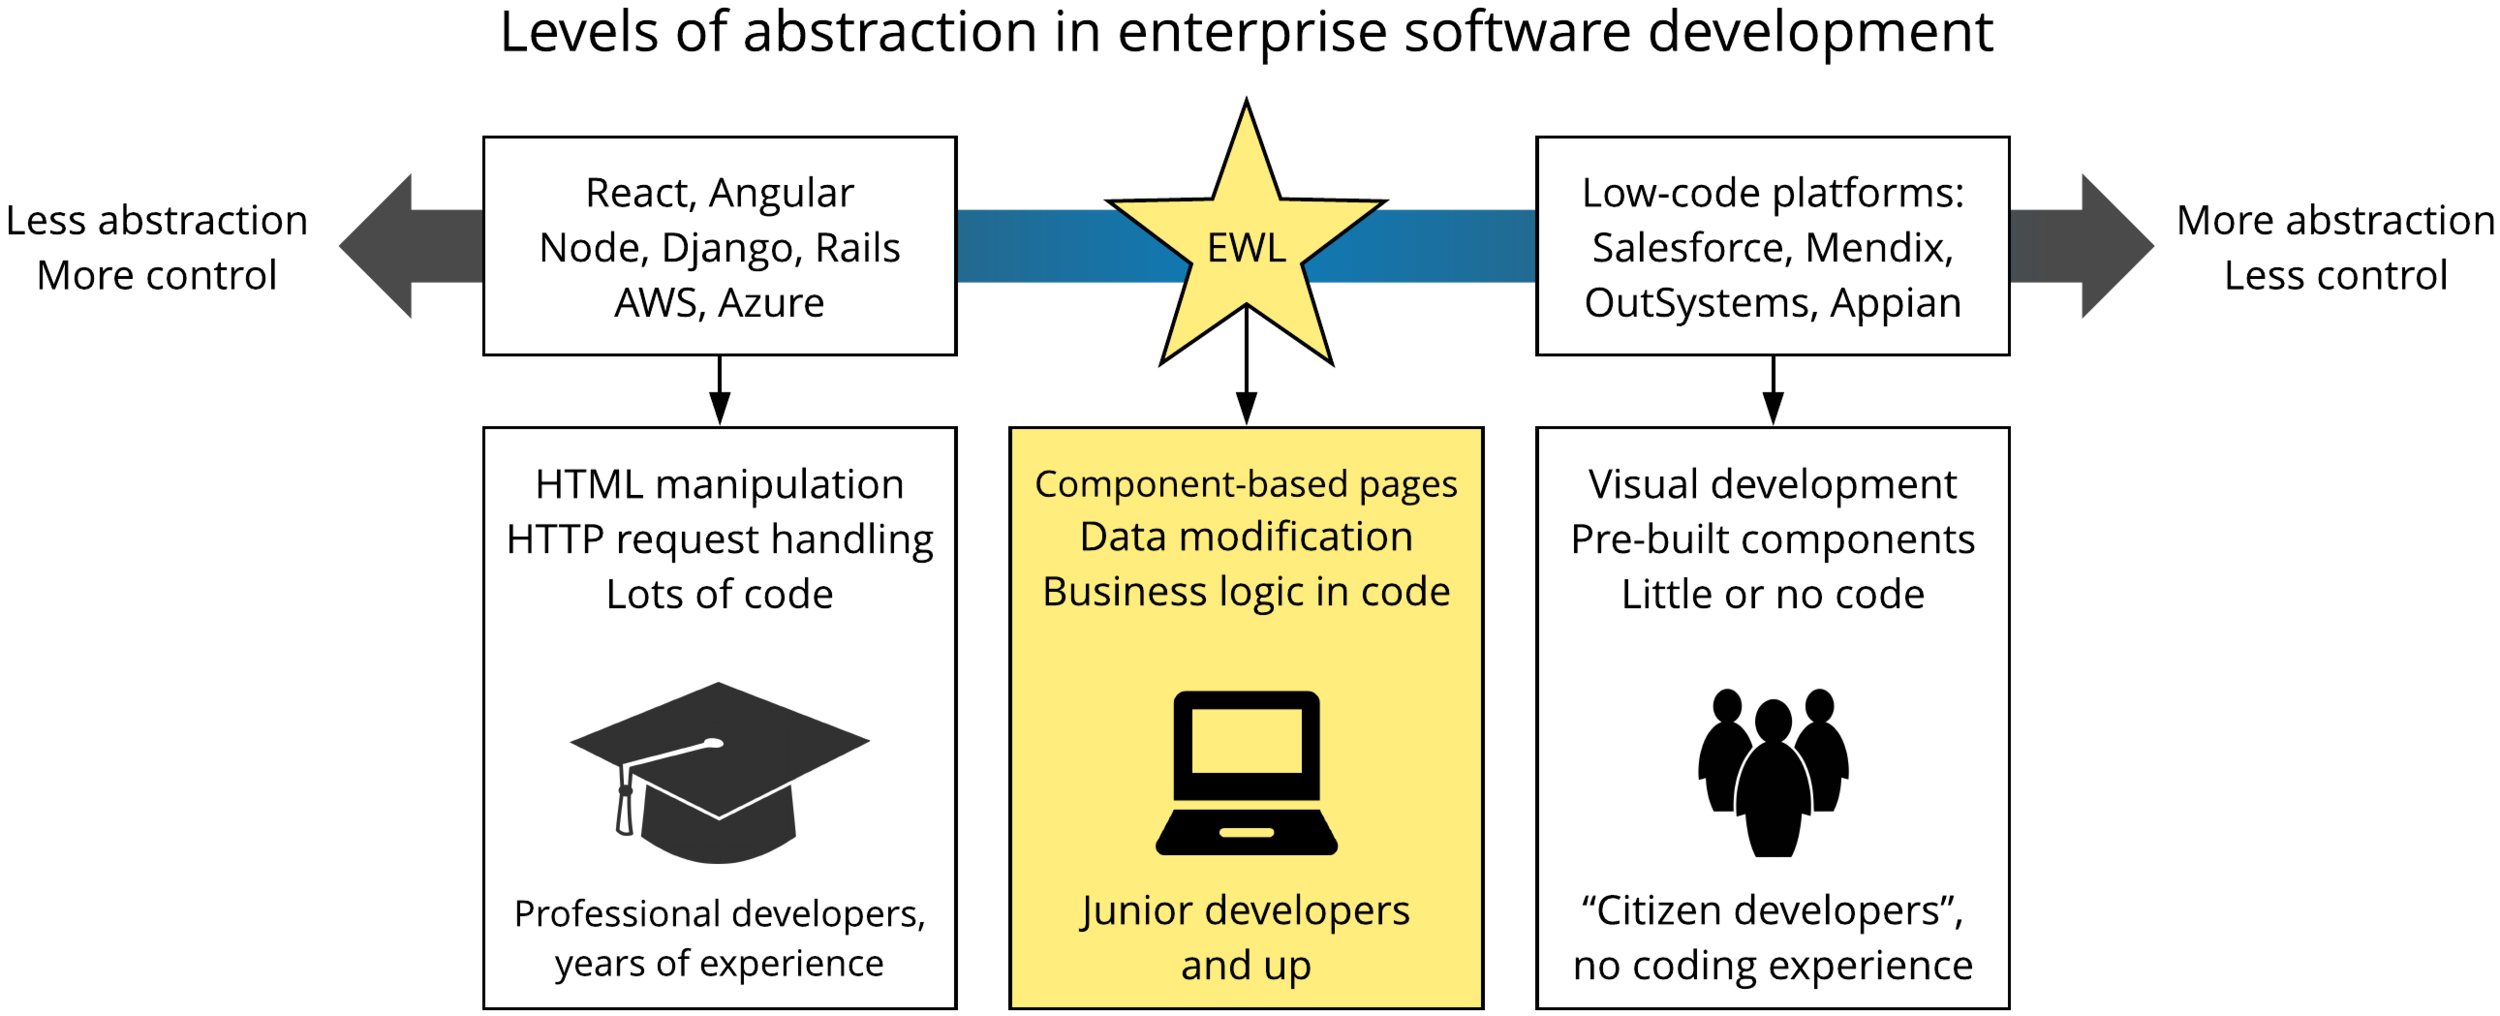 Diagram showing levels of abstraction in enterprise software development, with EWL positioned between traditional tools and low-code platforms